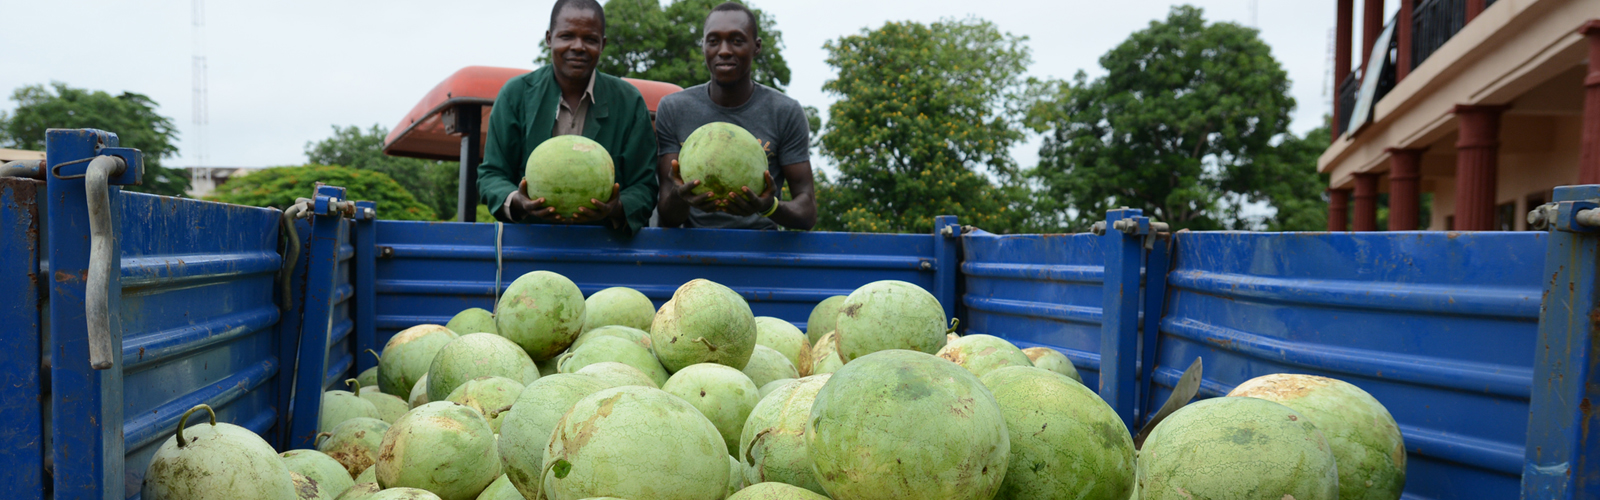 BIU FARMS HARVEST 3 TRUCK LOADS OF WATER MELON1